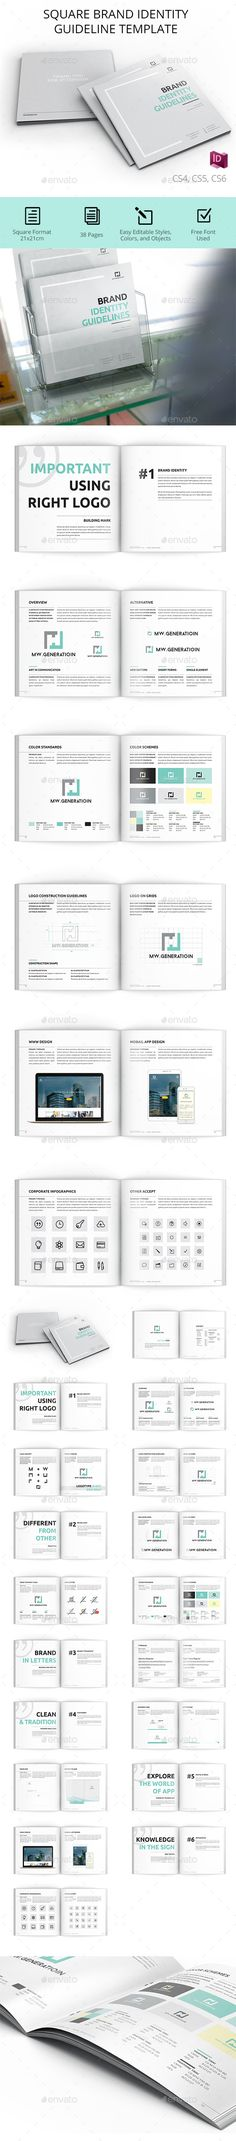 Stunning Brand Manual and Corporate Design Guideline Template - procedure manual template for word